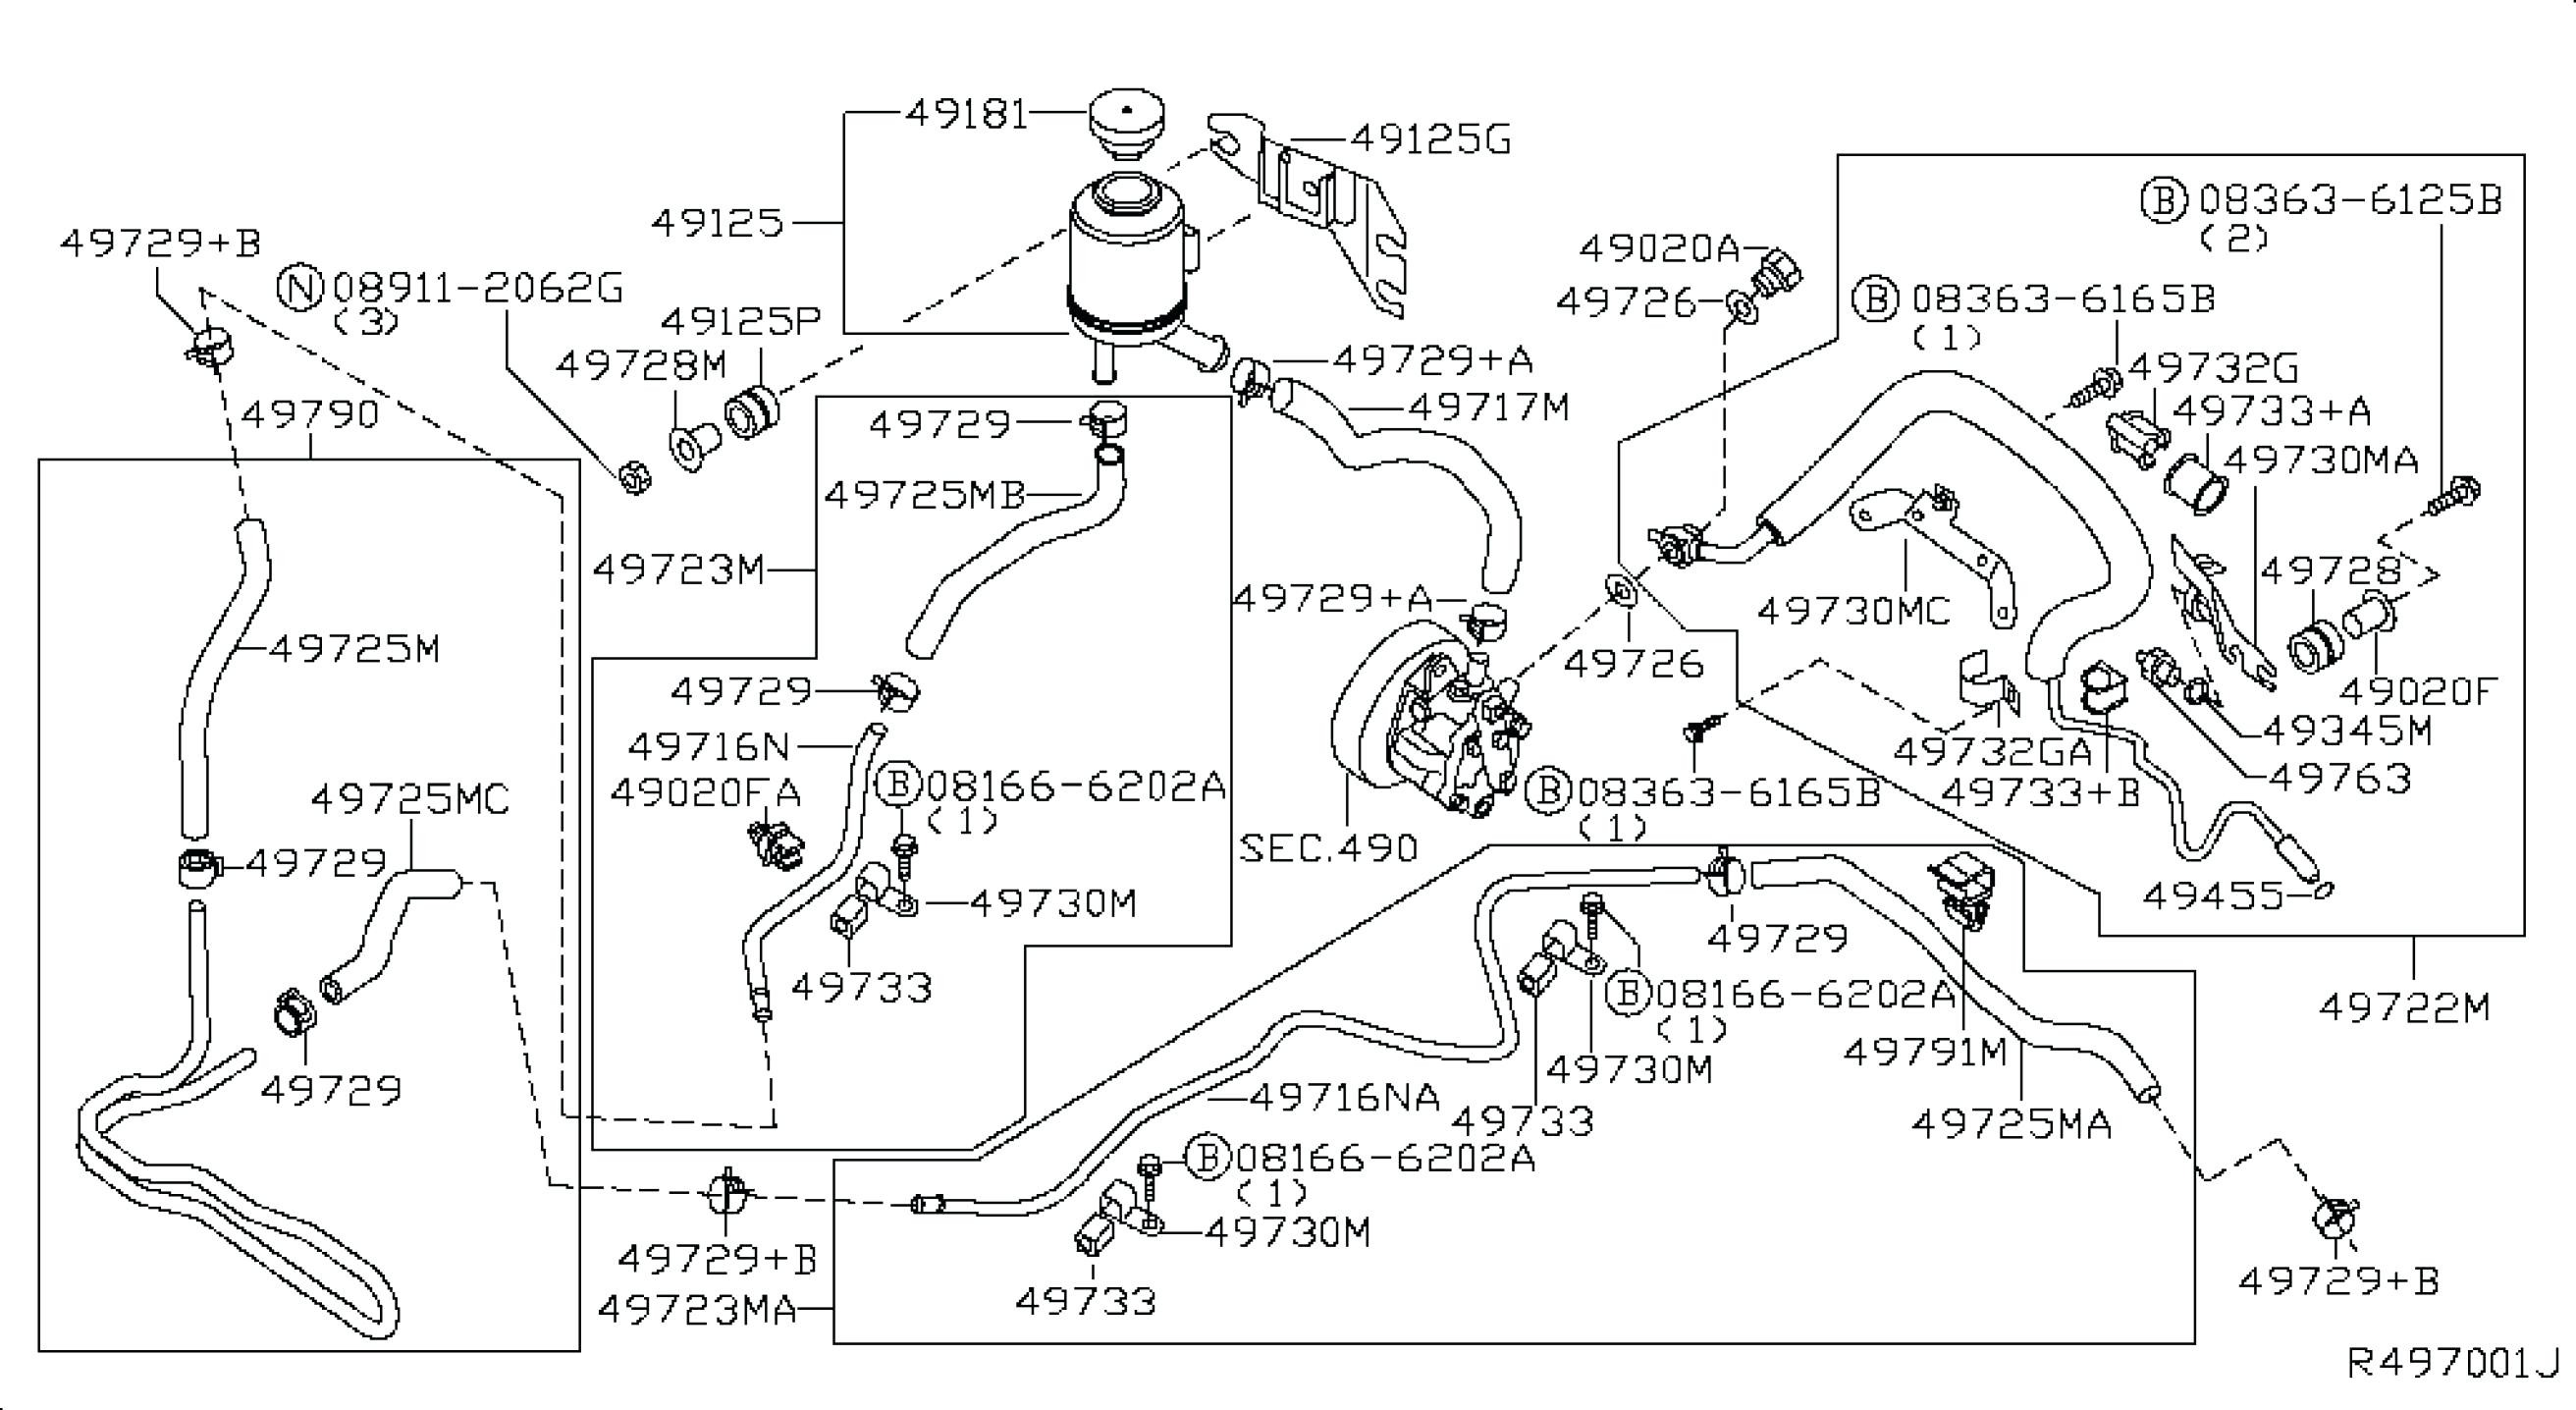 Subaru Engine Parts Diagram Circuit Diagram Maker Download Brake Front Pads 2005 Subaru forester Of Subaru Engine Parts Diagram Bear Cat Wt24t Echo Bear Cat Wheeled Trimmer 190cc Subaru Push W